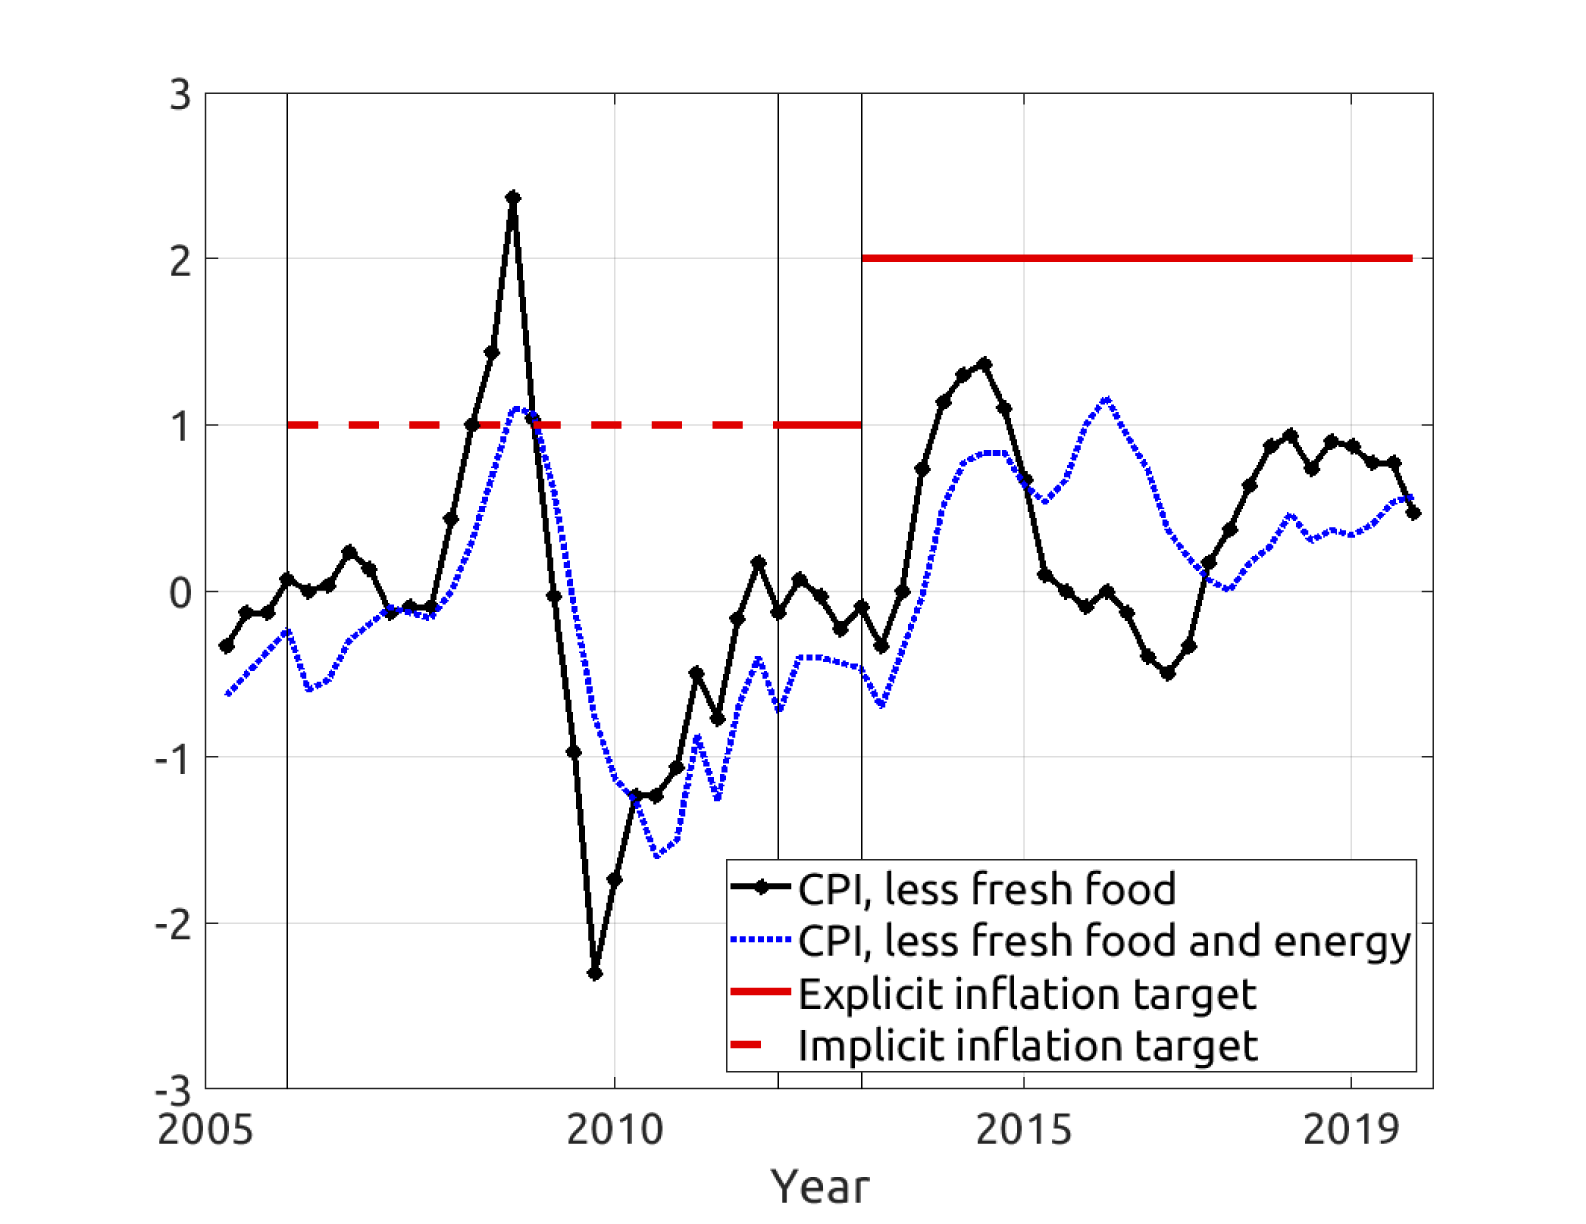 Figure 1. Inflation and inflation target in Japan. See accessible link for data description.